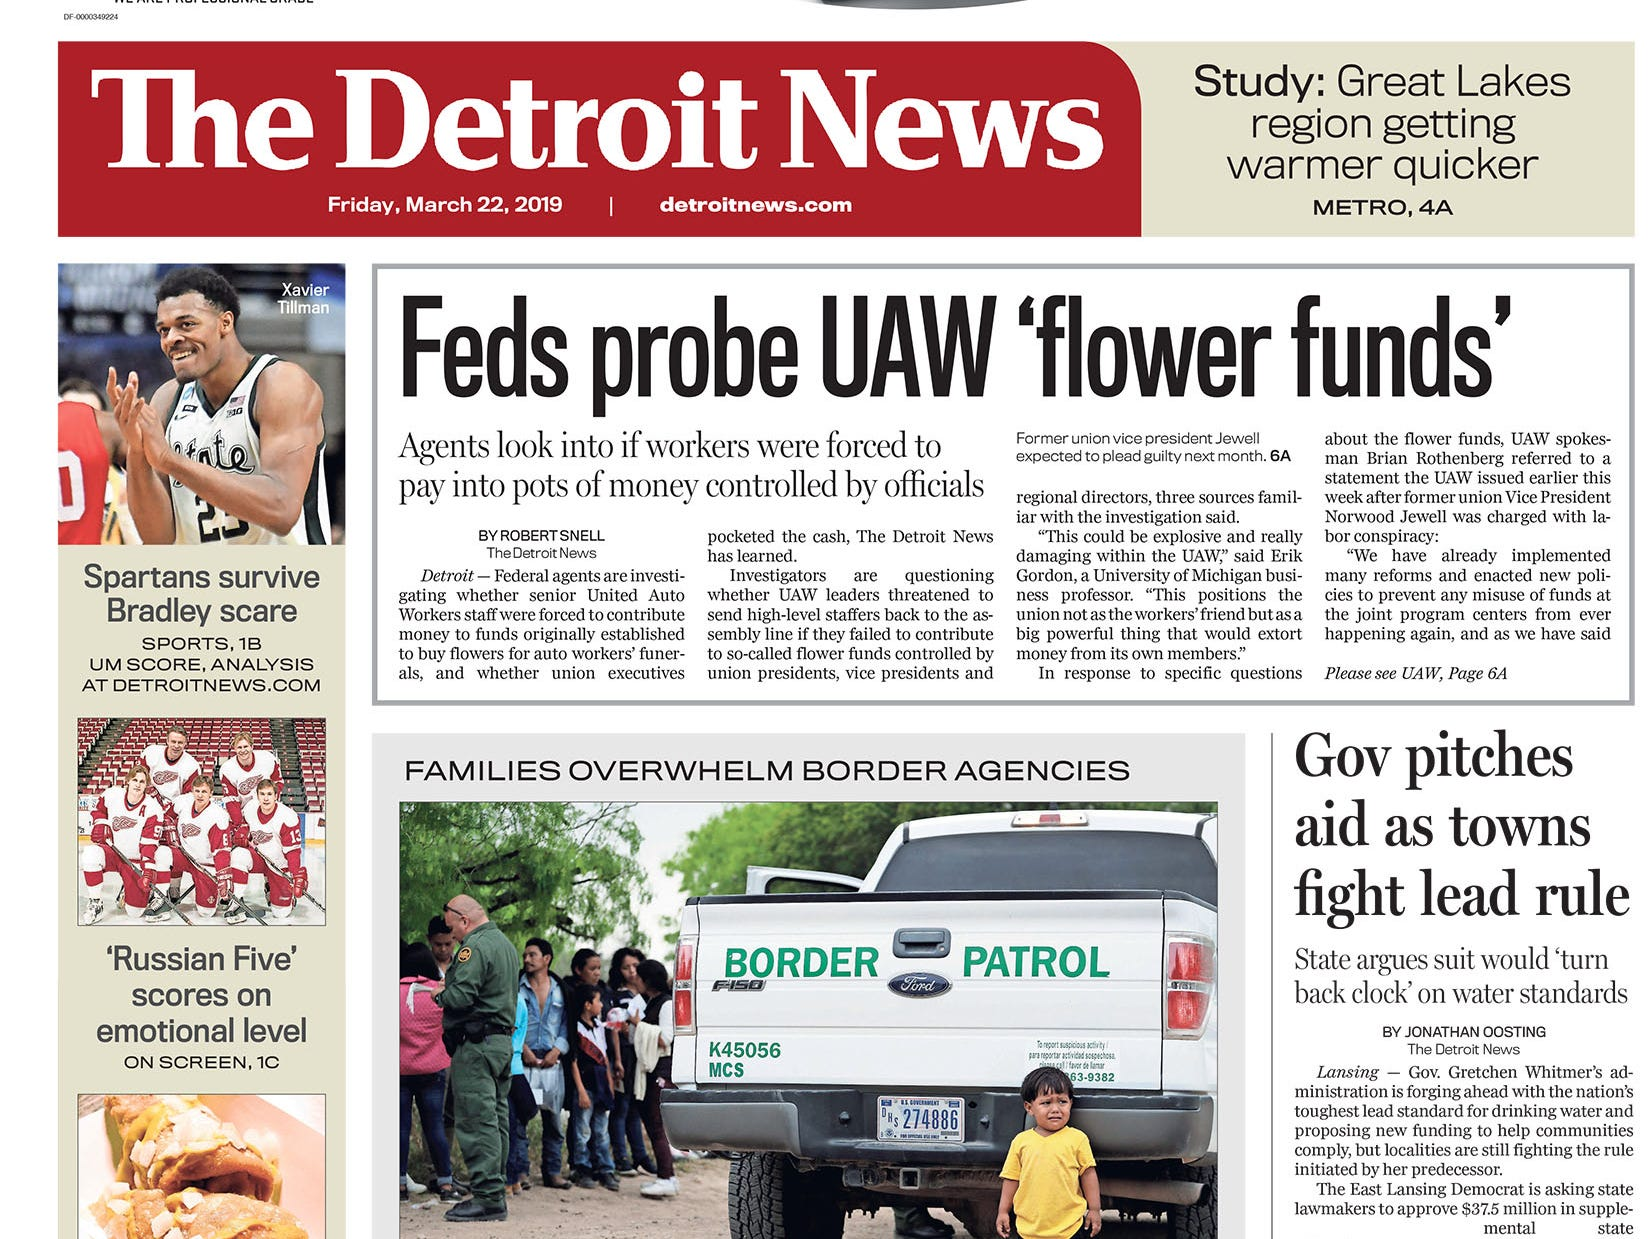 The front page of the Detroit News on Friday, March 22, 2019.